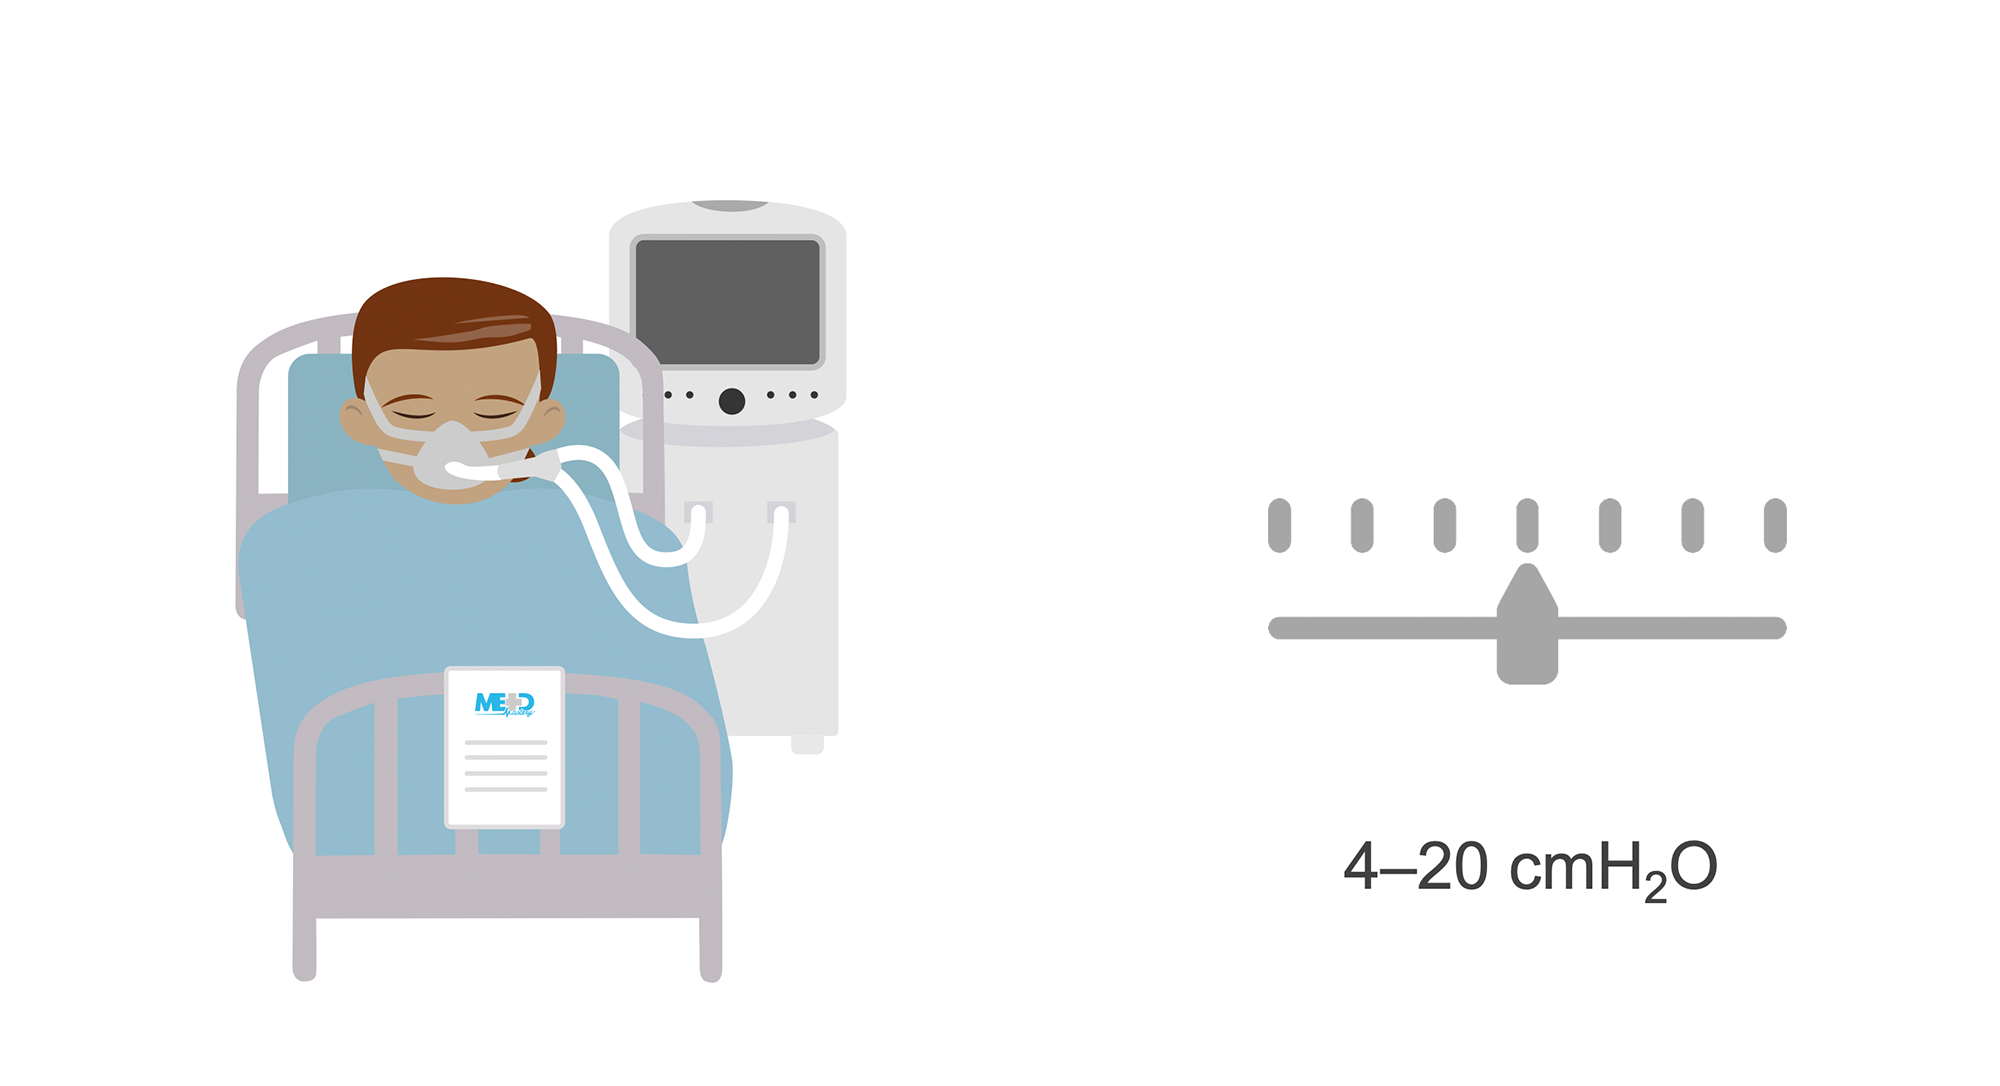 Patient in bed in sleep lab and scale of pressure titration for CPAP. Illustration.